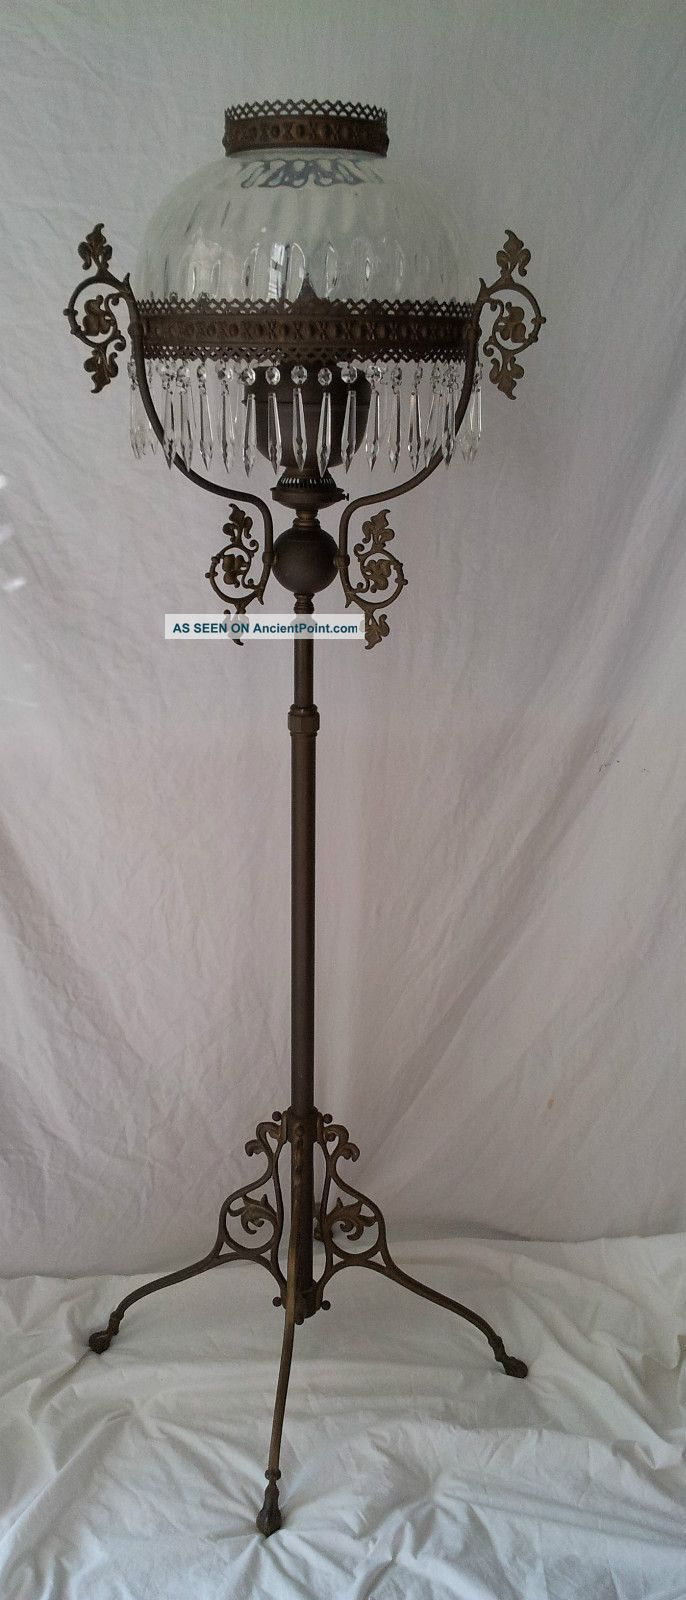 Victorian Style Floor Lamps Antique Victorian Style Kerosene Oil Floor Lamp Brass John Scott Made Antique Floor Lamps Antique Oil Lamps Victorian Lamps